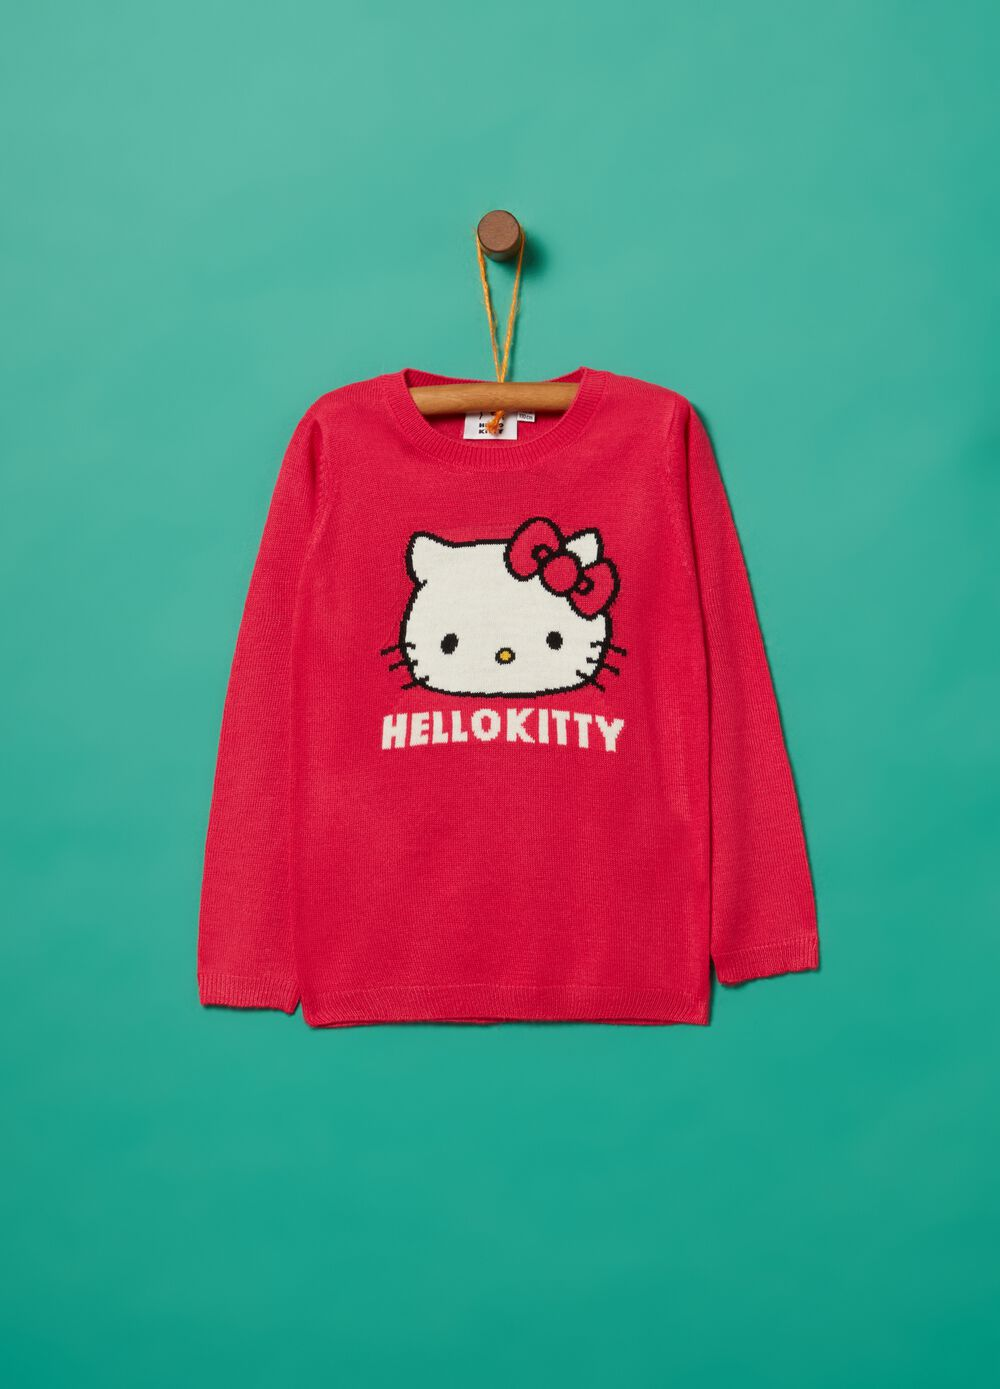 Knitted top with Hello Kitty embroidery